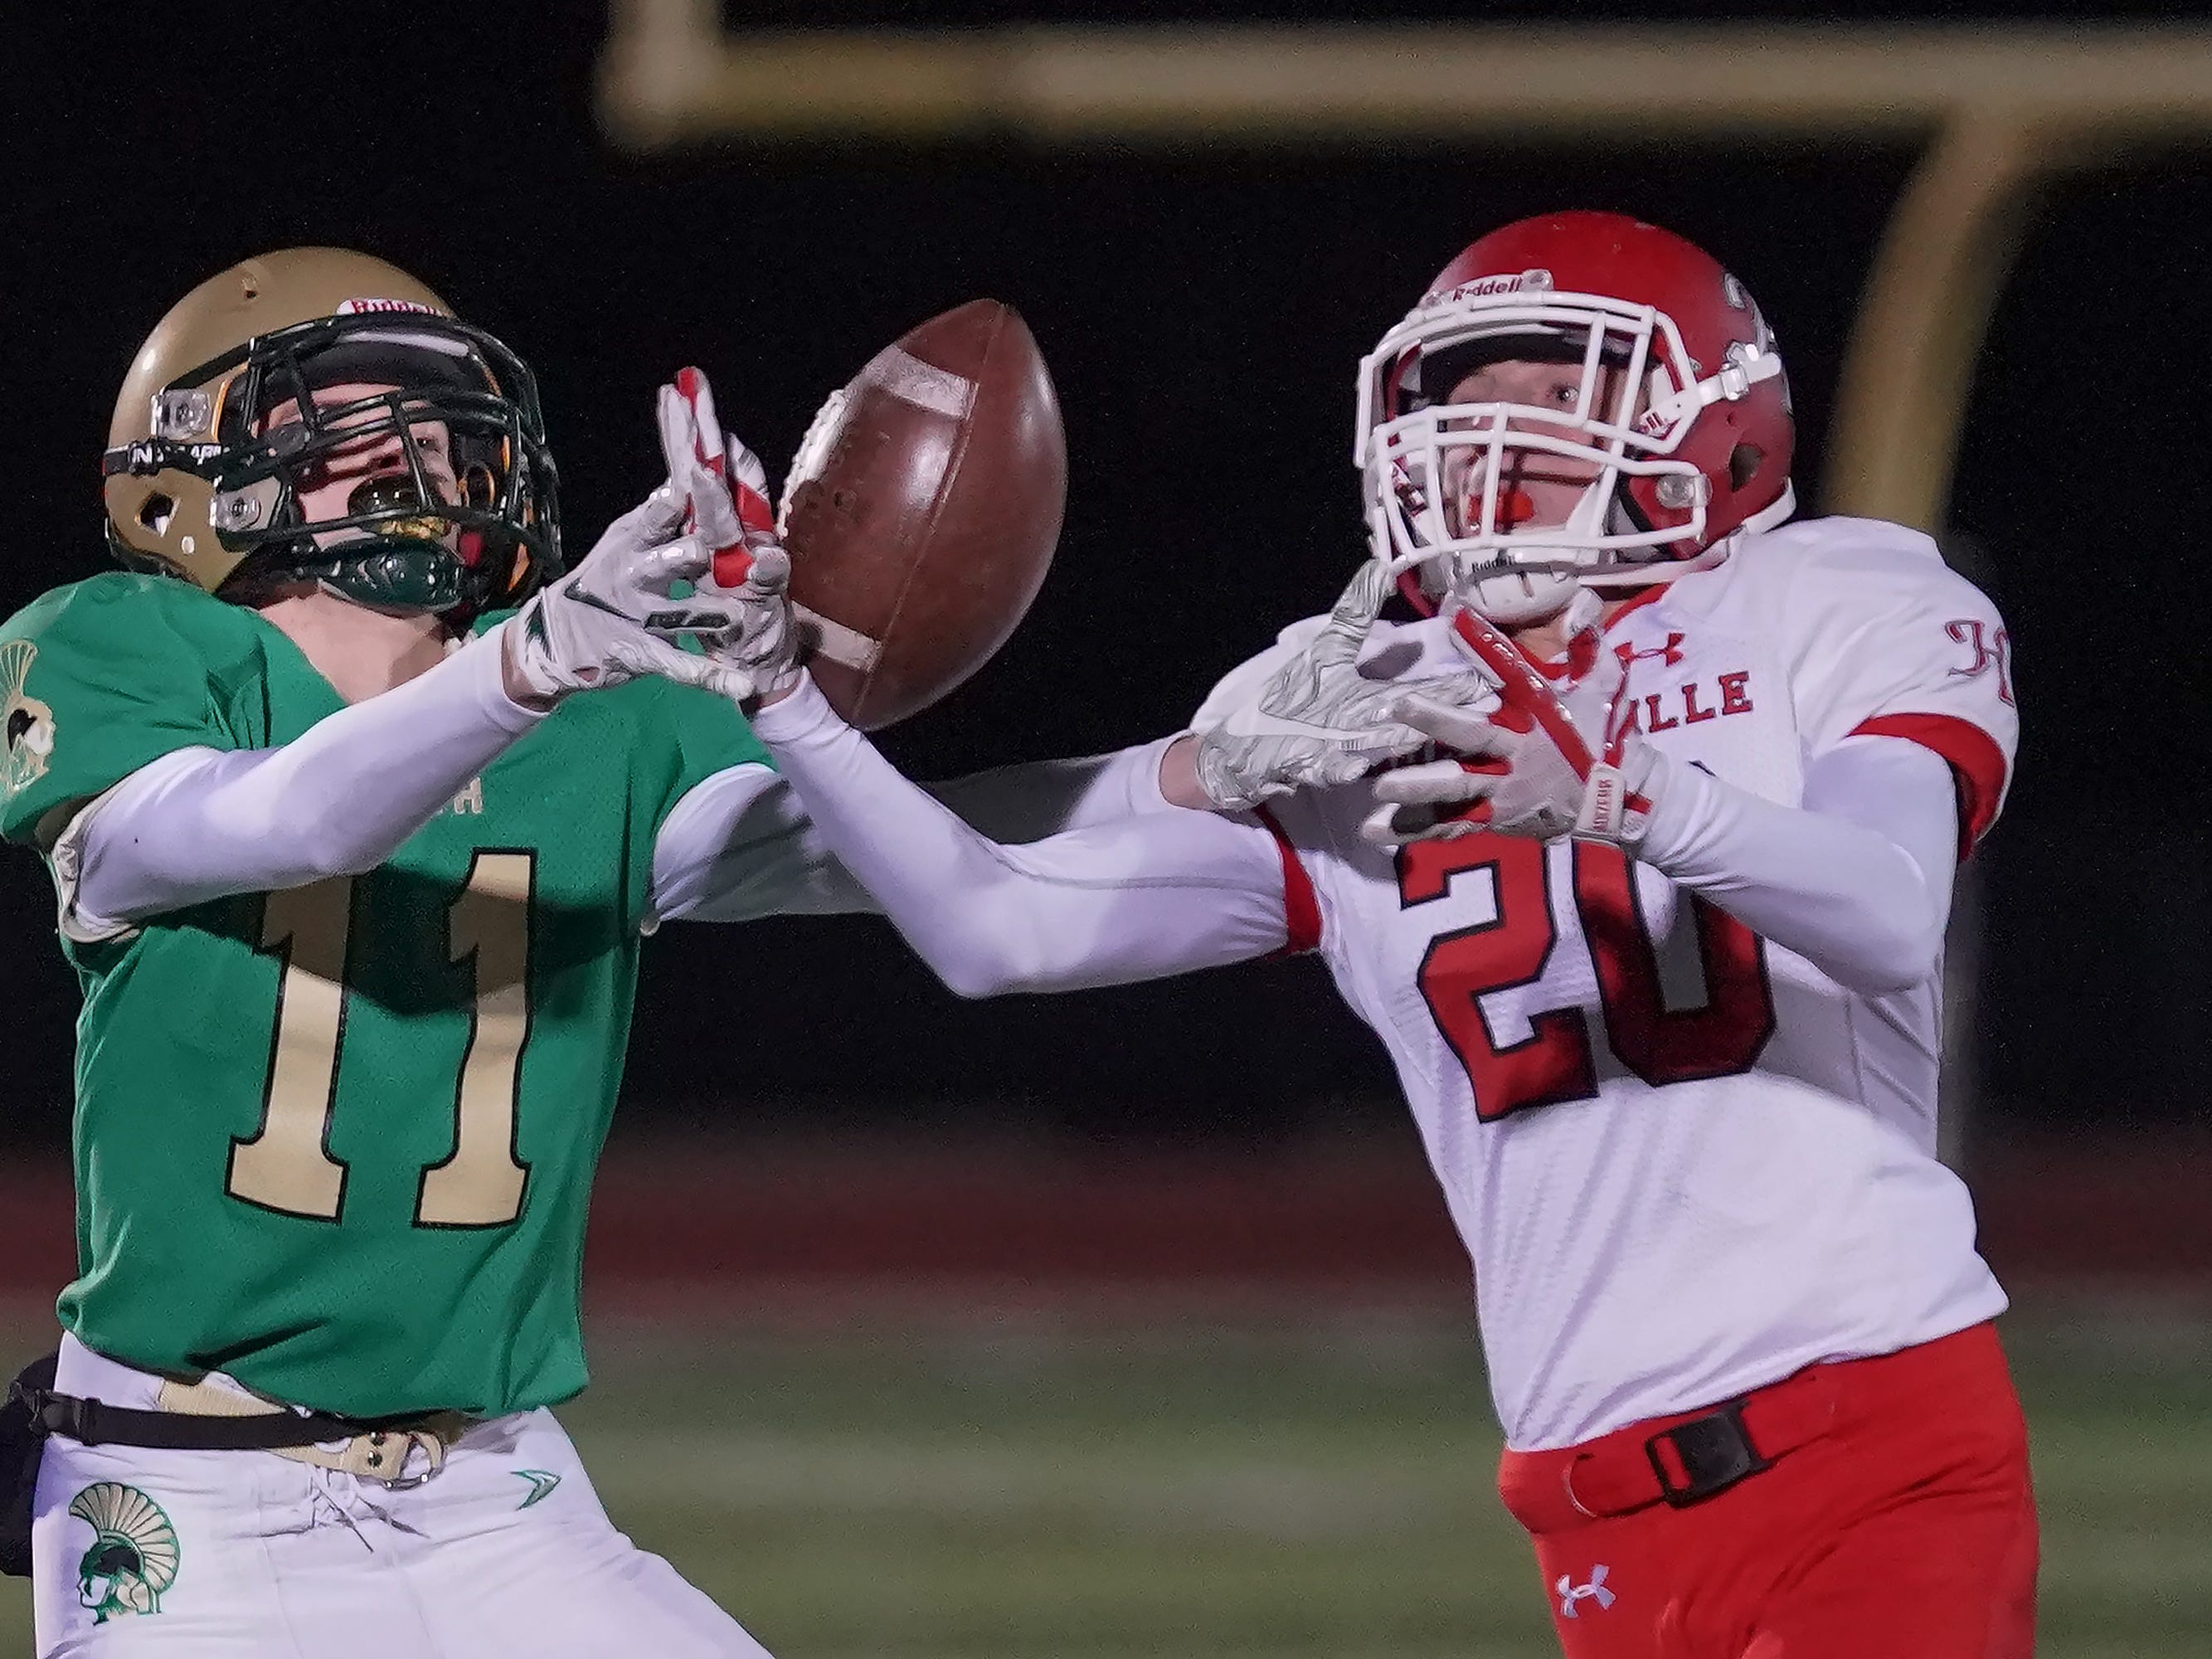 Trevor Van Dyke (11) of Oshkosh North and Logan Grossman (20) of Hortonville battle over a pass. The Oshkosh North Spartans hosted the Hortonville Polar Bears in an FVA-South conference matchup Friday evening, October 12, 2018 at J. J. Keller Field at Titan Stadium.